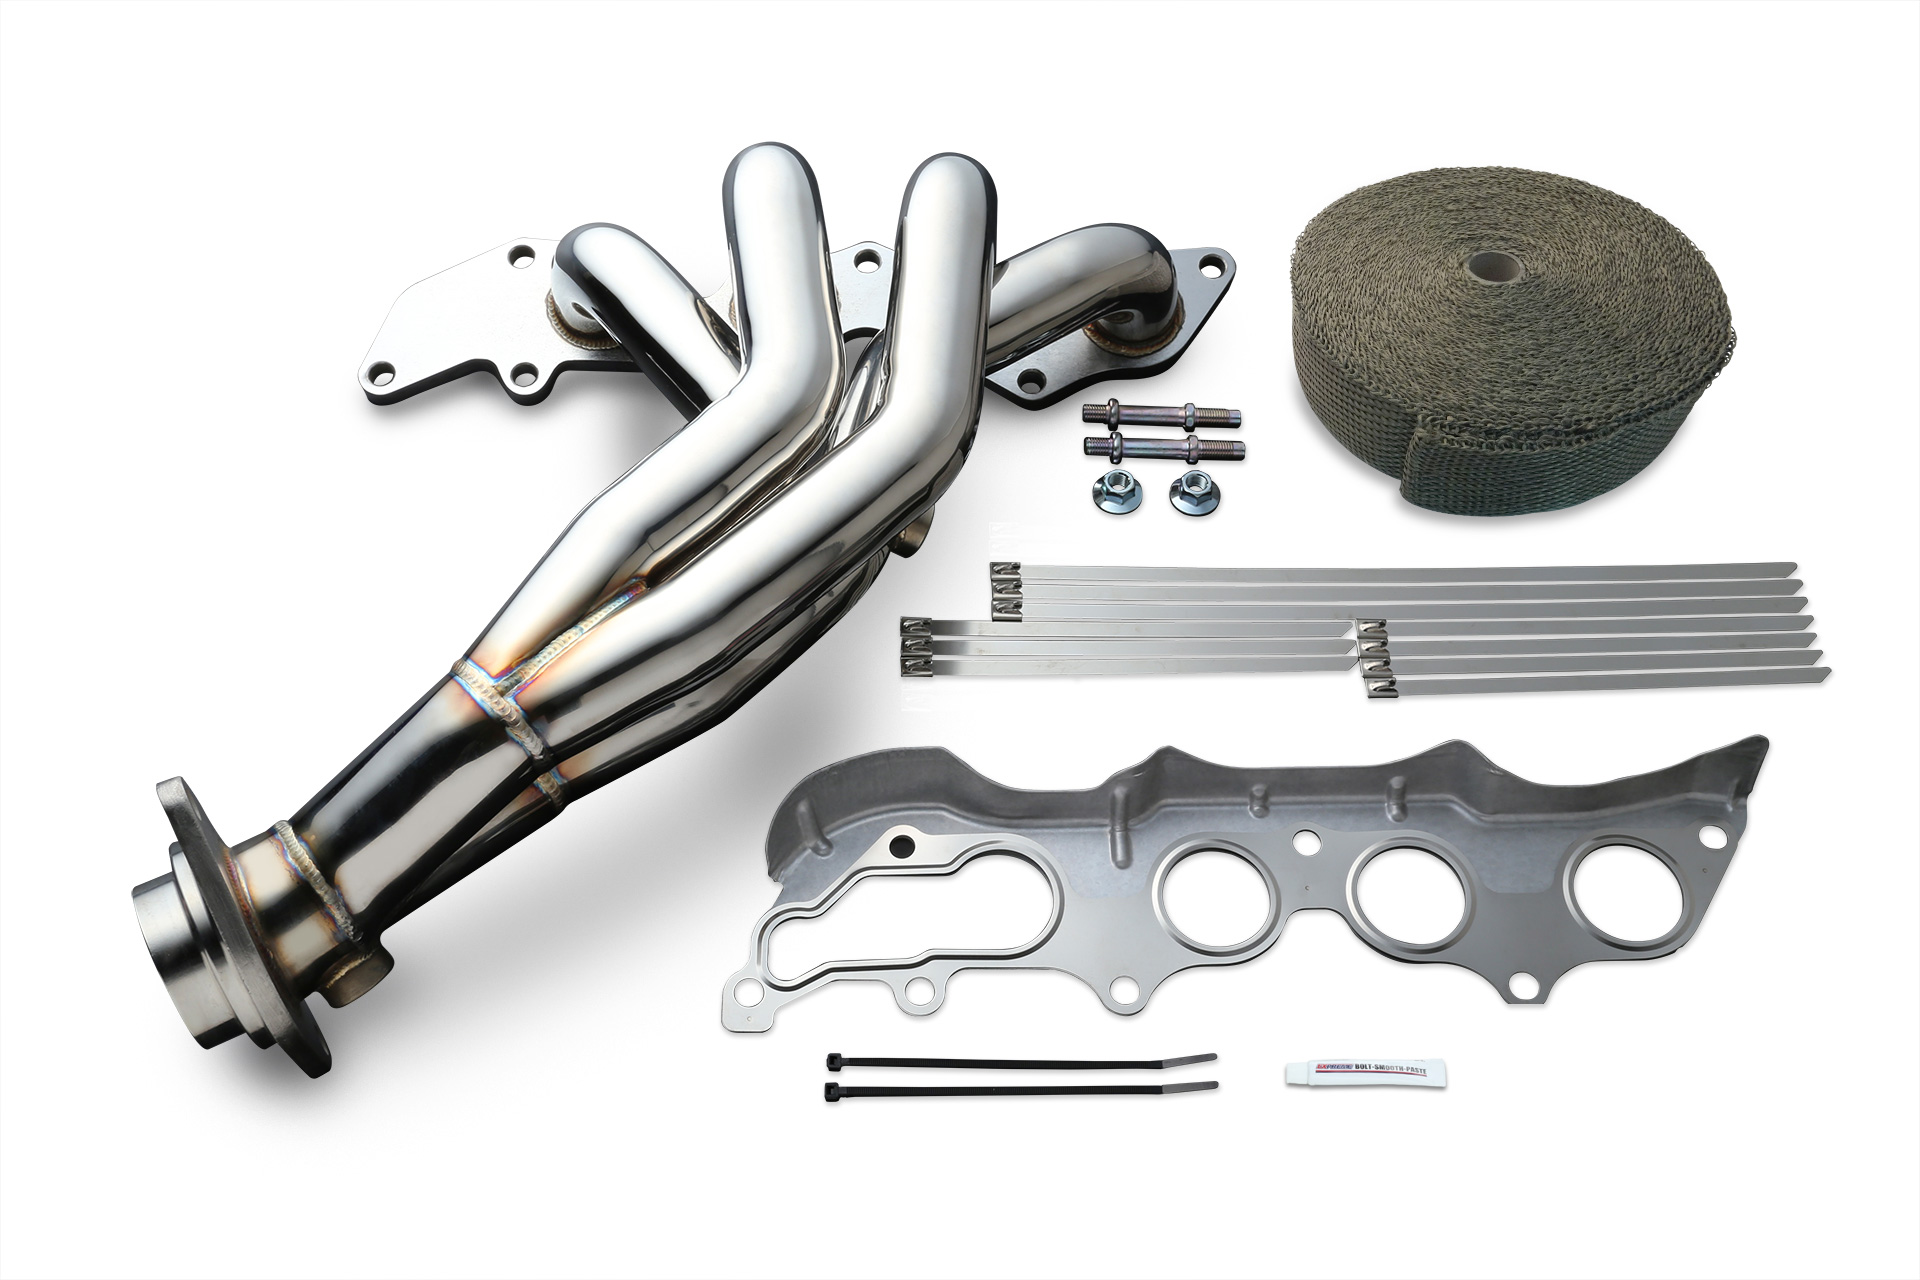 EXPREME MX-5 NCEC LF-VE EXHAUST SYSTEM